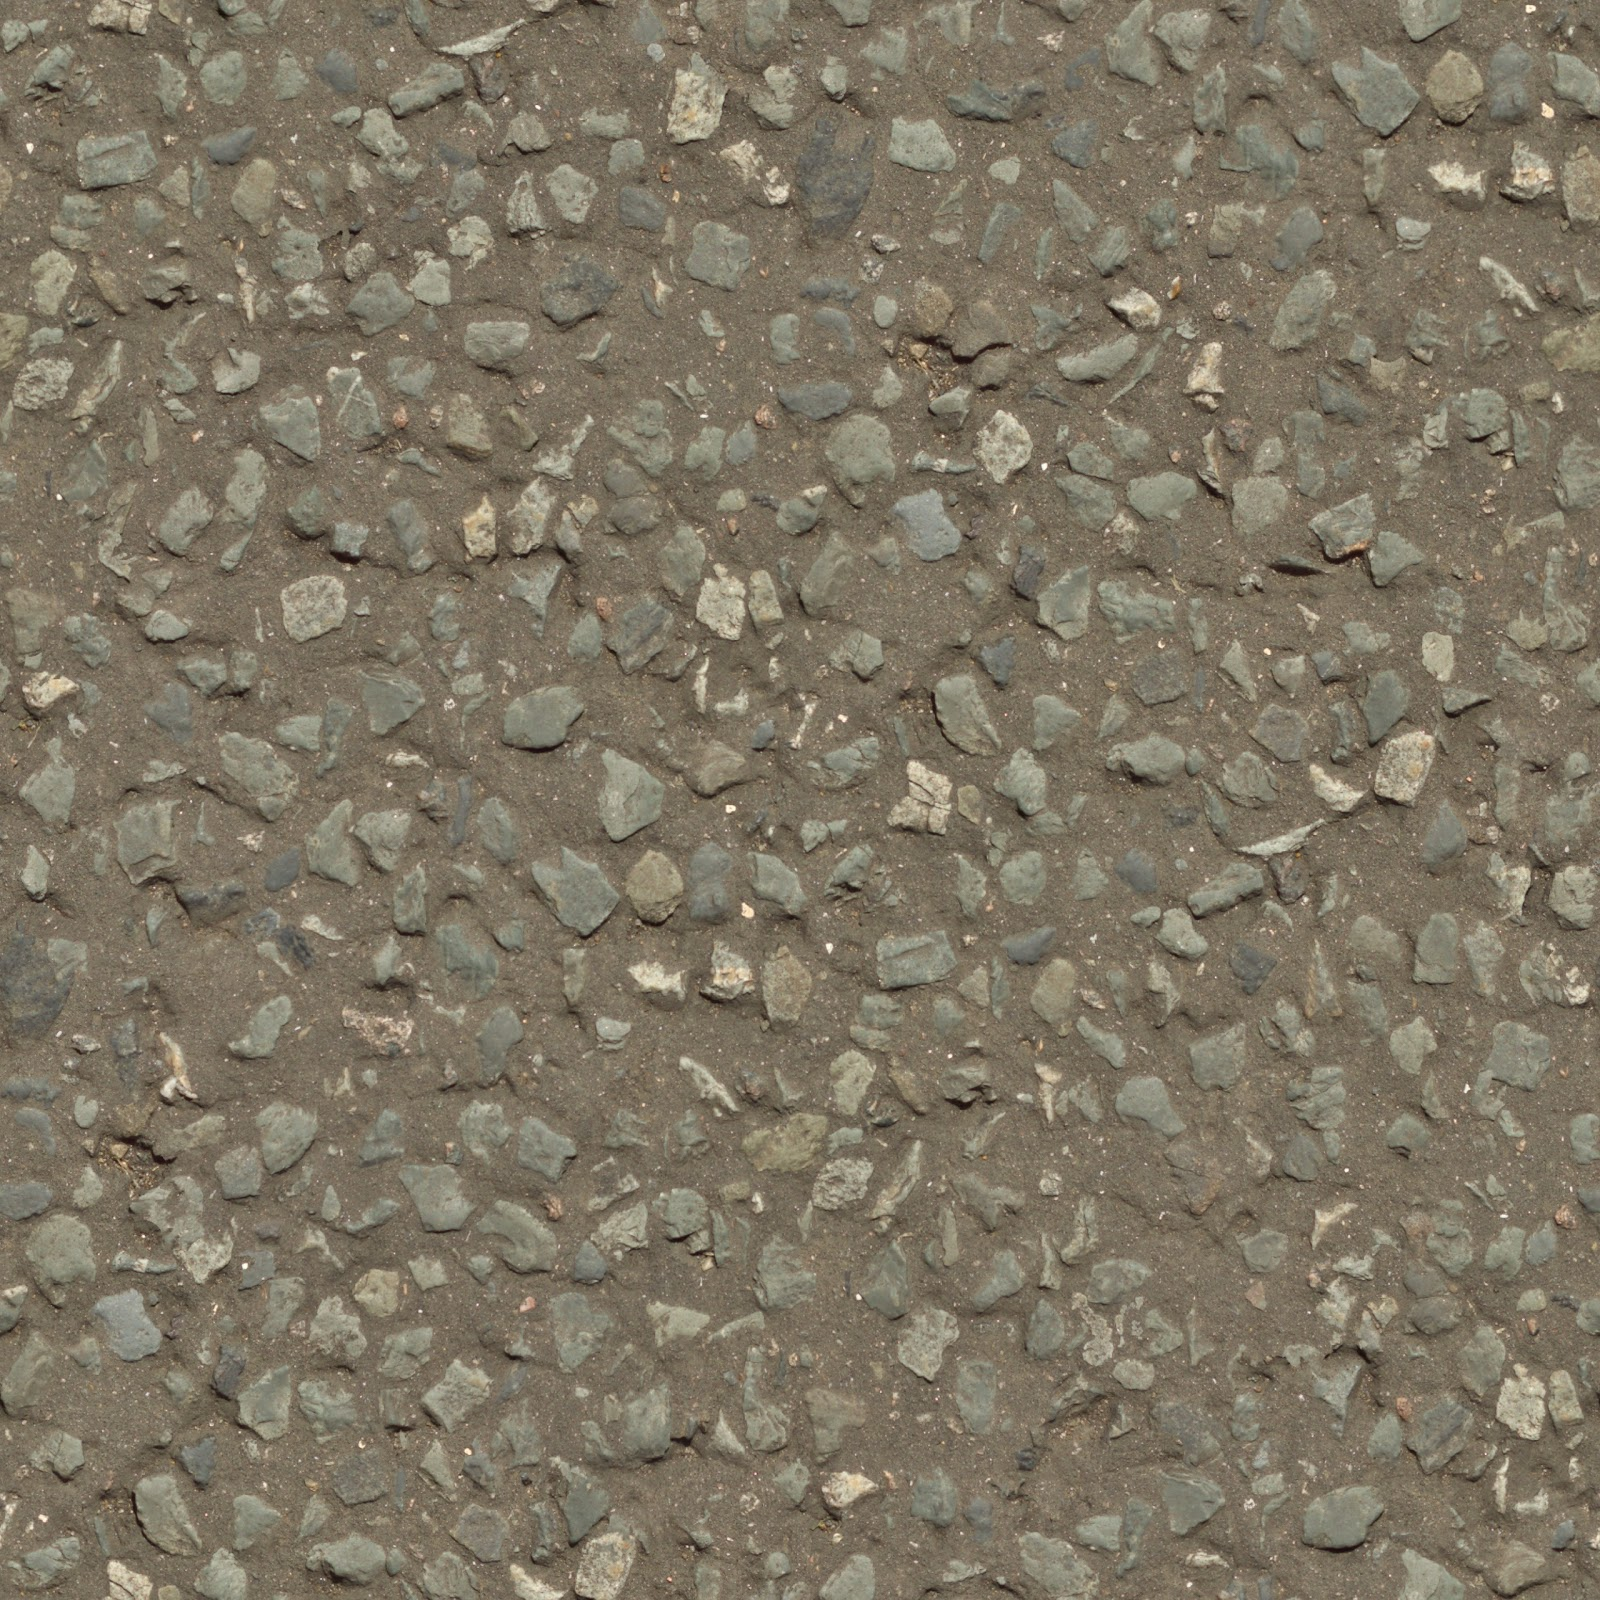 Seamless dirt ground floor walkway texture